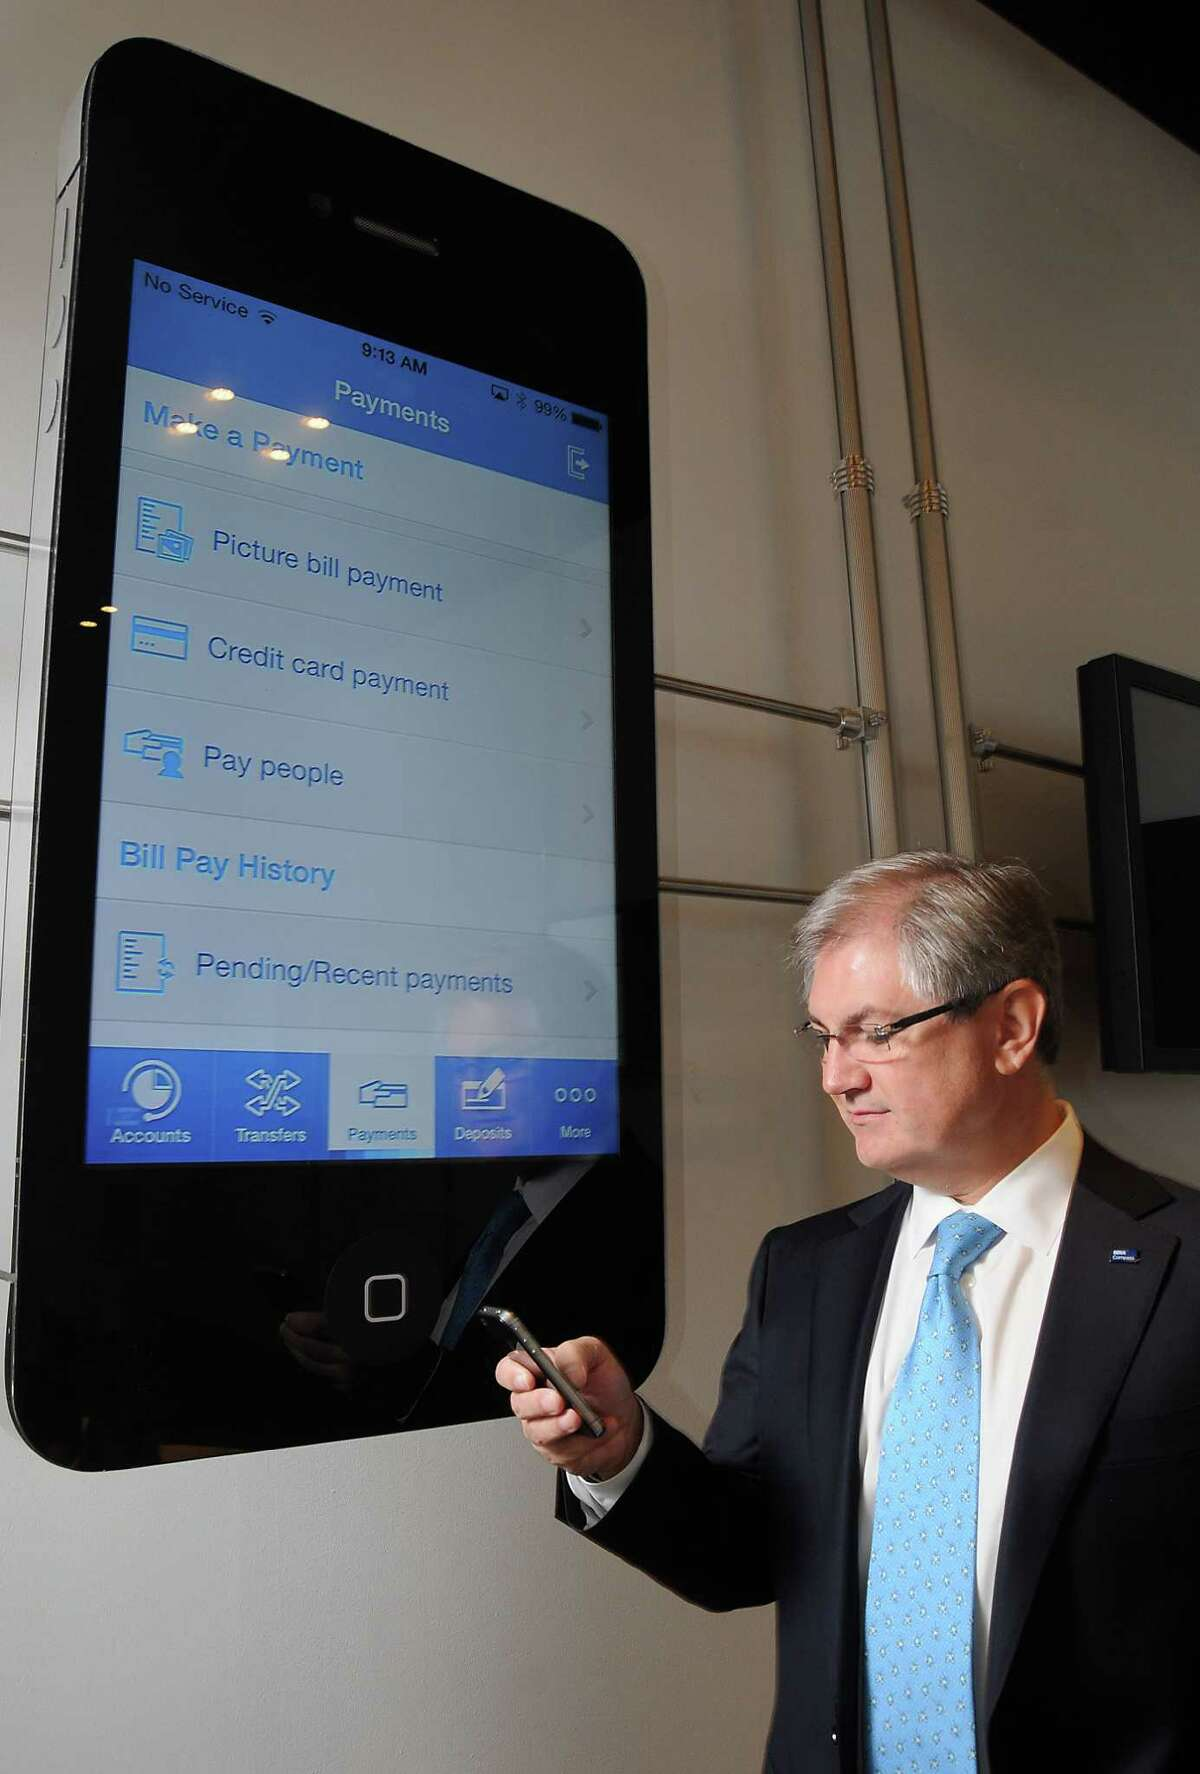 Alejandro Carriles demonstrates his bank's mobile application's features at the BBVA Compass Bank Building on Post Oak Friday Aug. 29, 2014.(Dave Rossman photo)